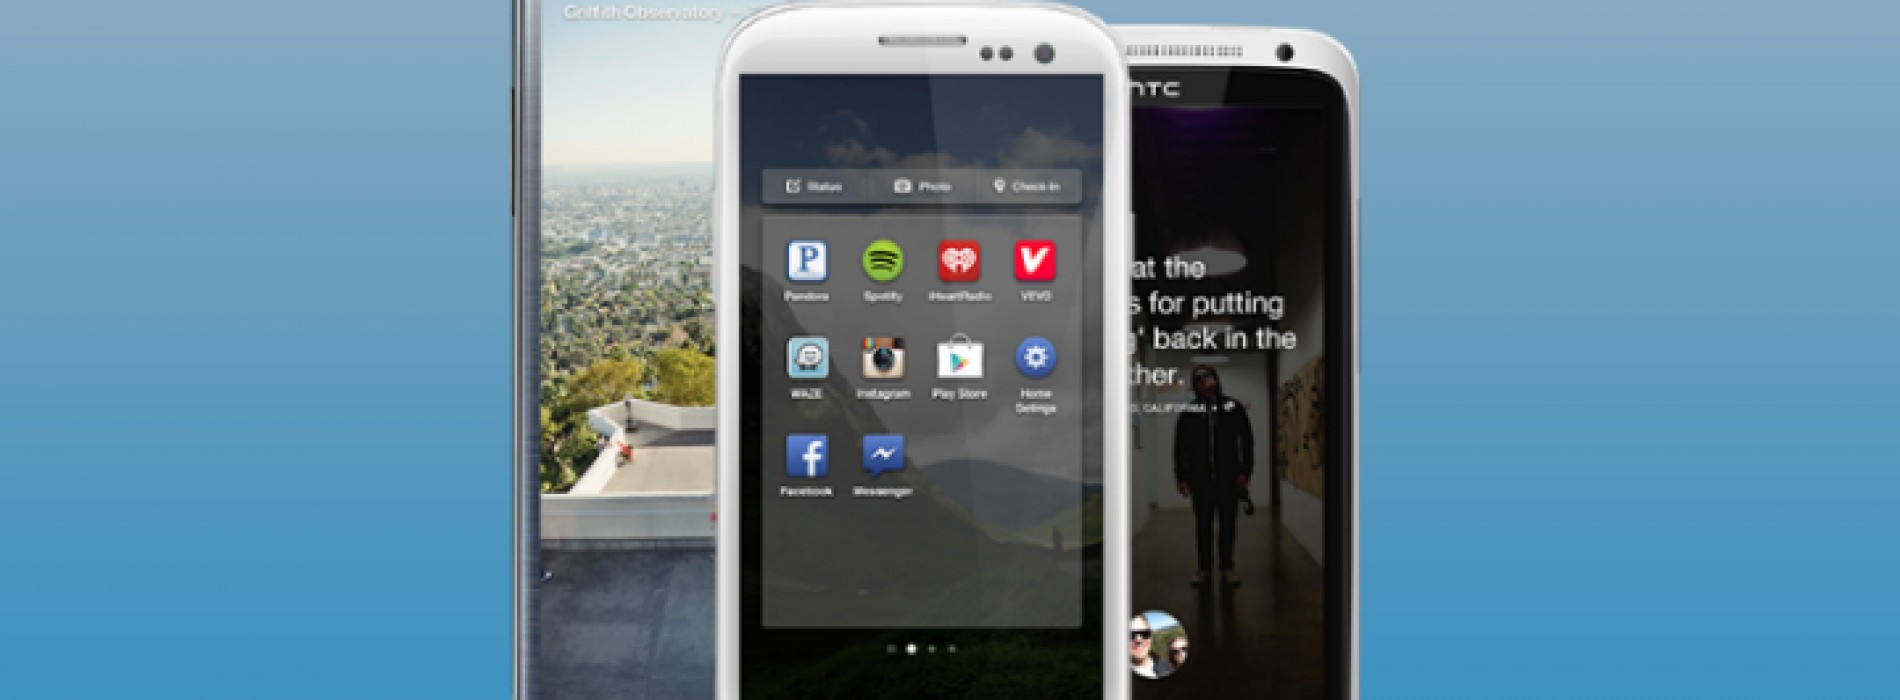 Facebook Home now available for select Android devices